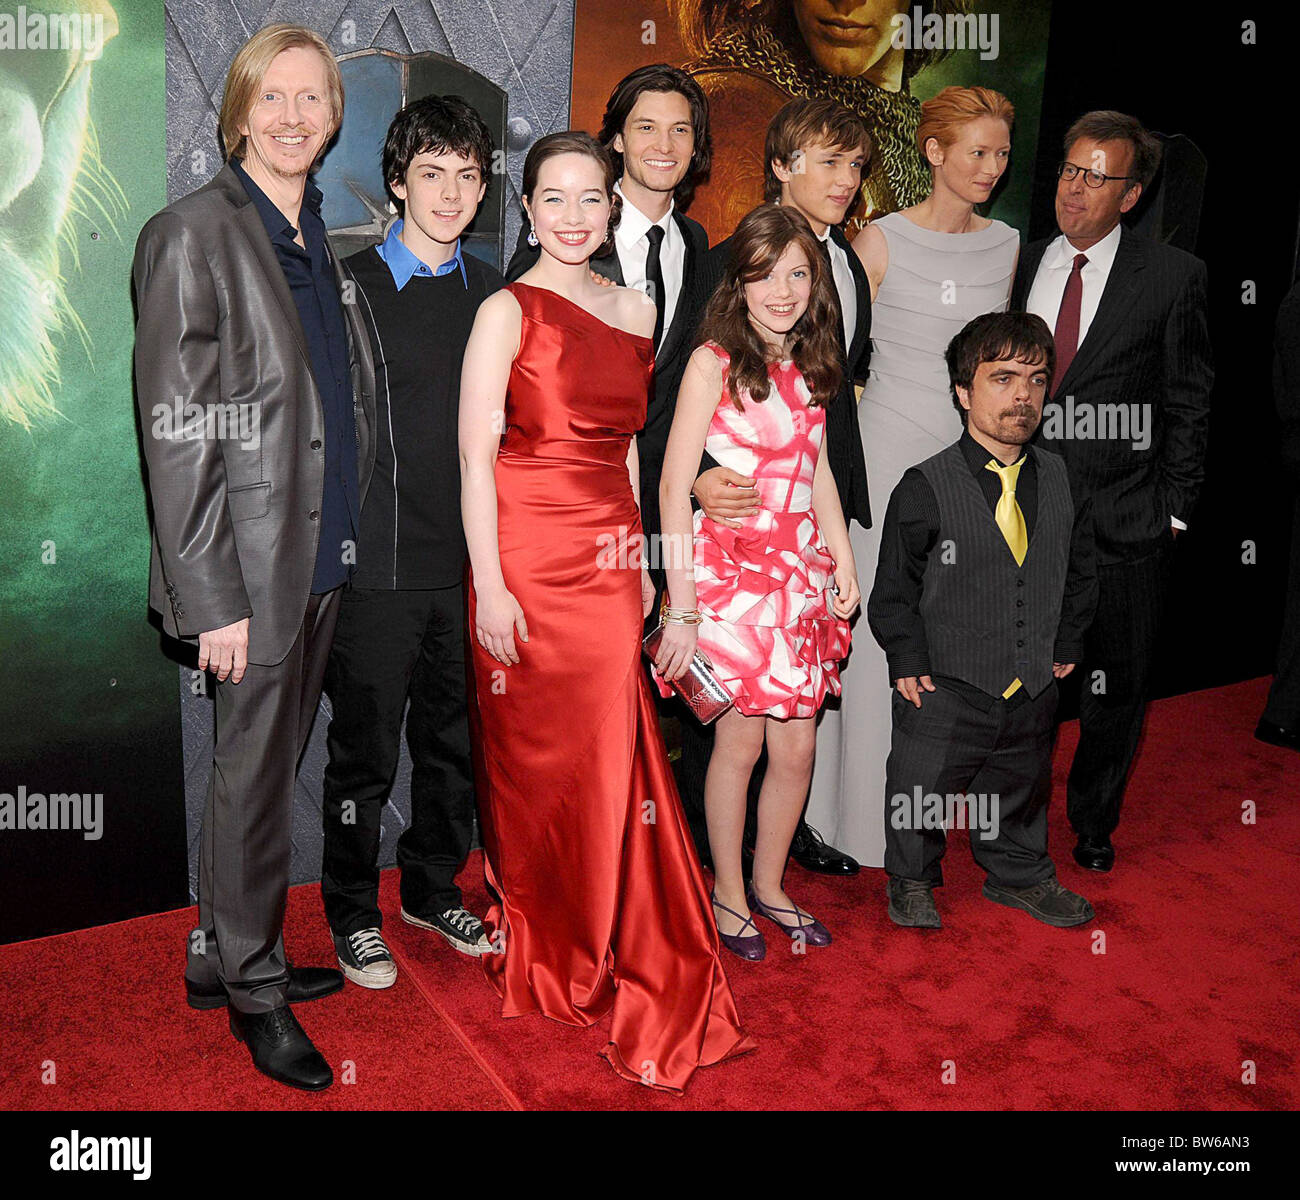 THE CHRONICLES OF NARNIA: PRINCE CASPIAN Premiere Stock